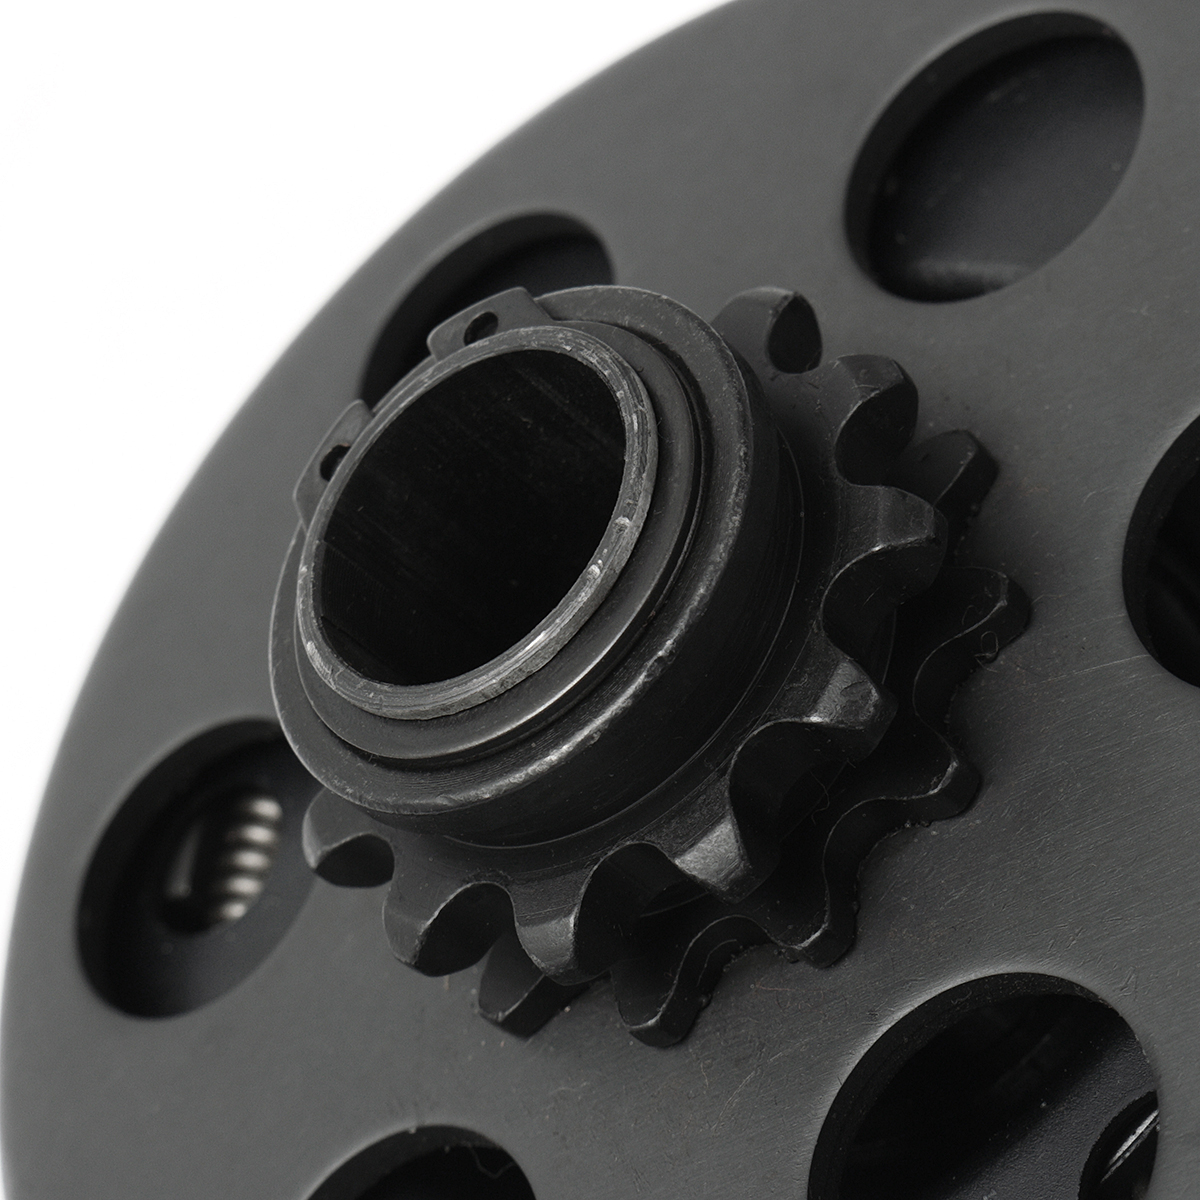 3/4inch Bore Centrifugal Clutch 12 Tooth #35 Chain Screw Part For Minibike Go Kart